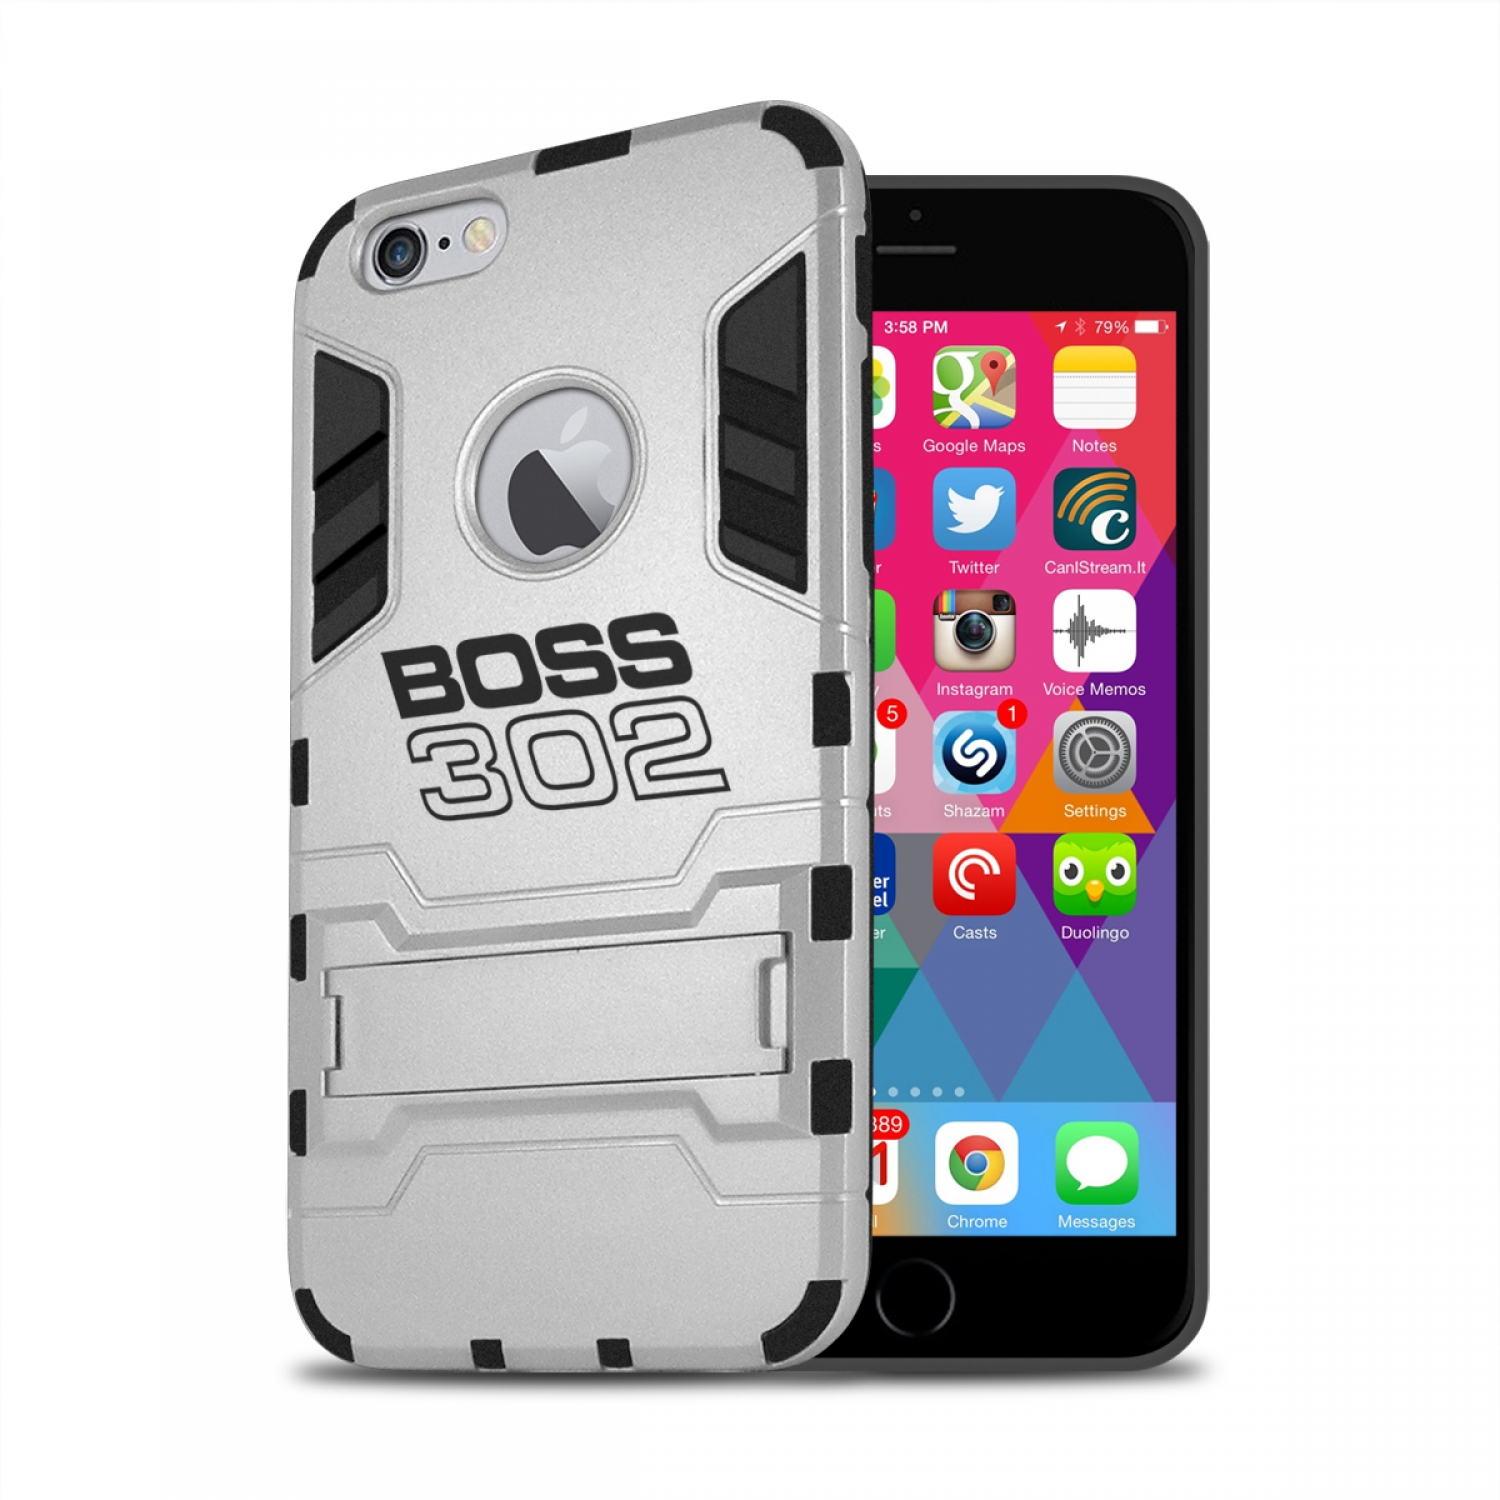 Ford Mustang Boss 302 iPhone 6 6s Shockproof TPU ABS Hybrid Silver Phone Case